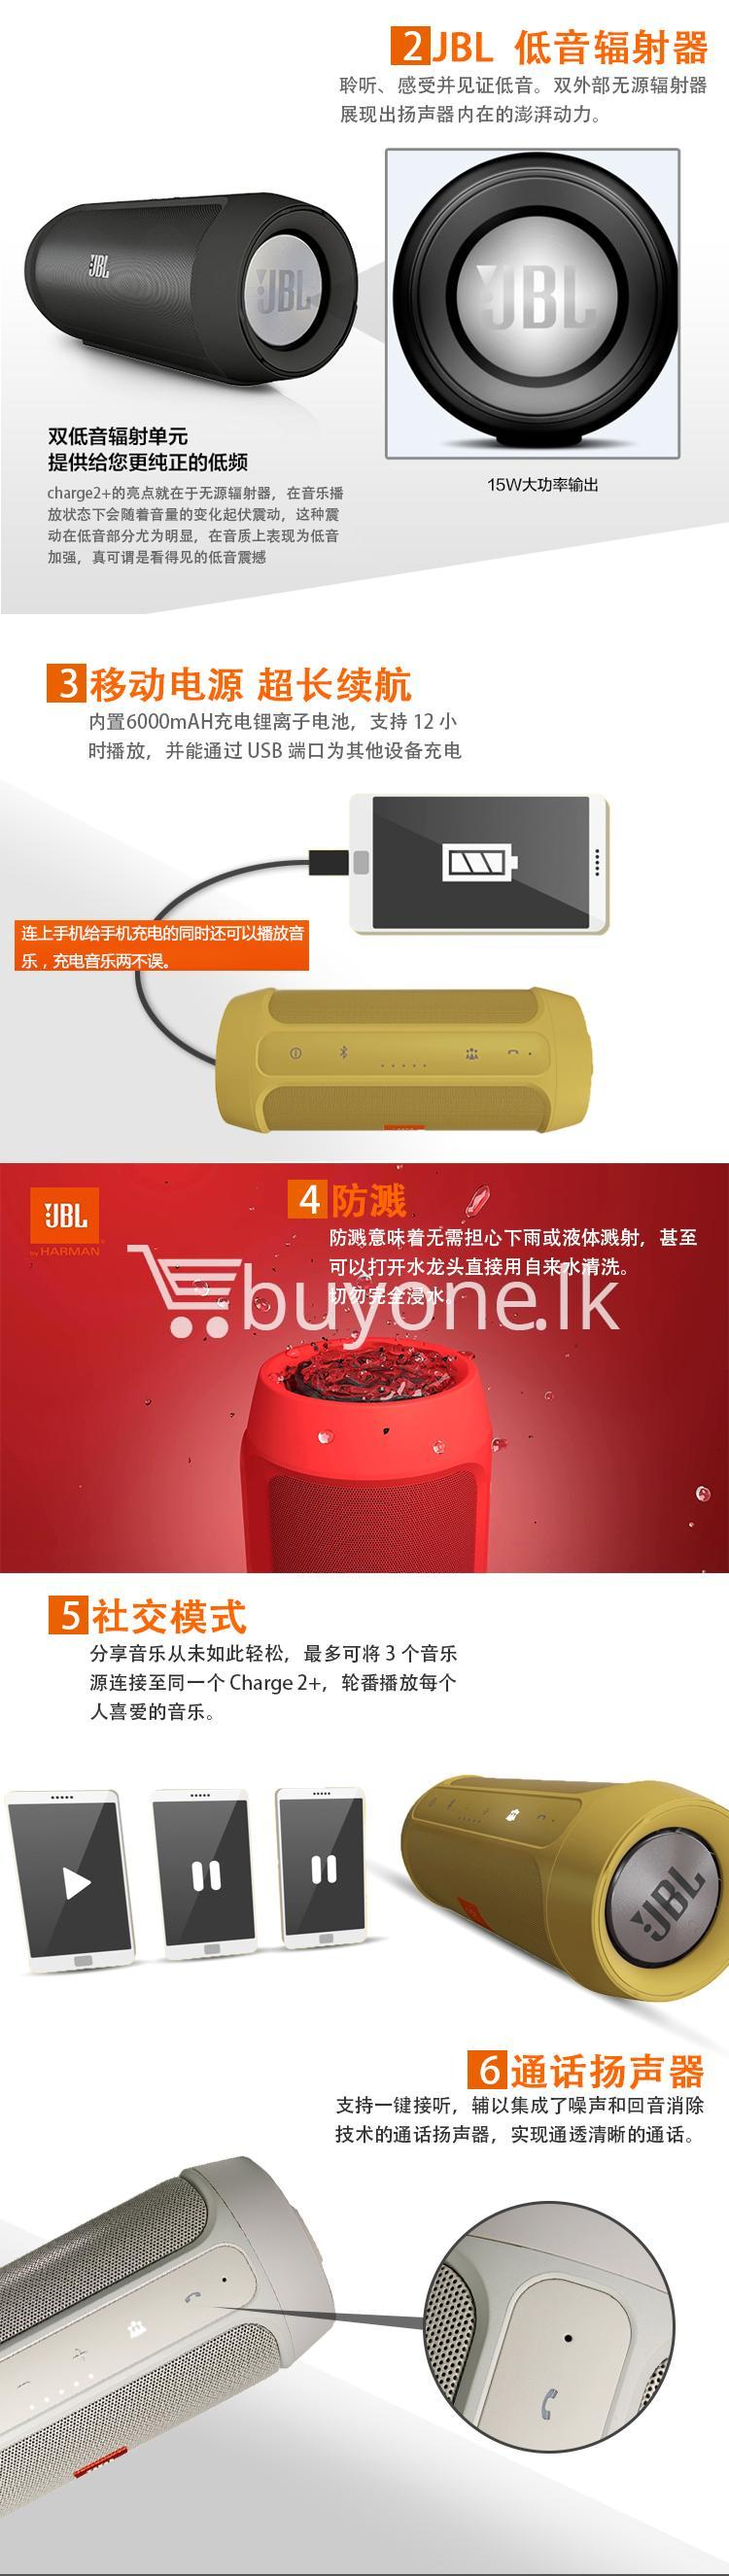 jbl charge 2 portable bluetooth speaker with usb charger power bank mobile phone accessories special best offer buy one lk sri lanka 08939 - JBL Charge 2 Portable Bluetooth Speaker with USB Charger Power Bank